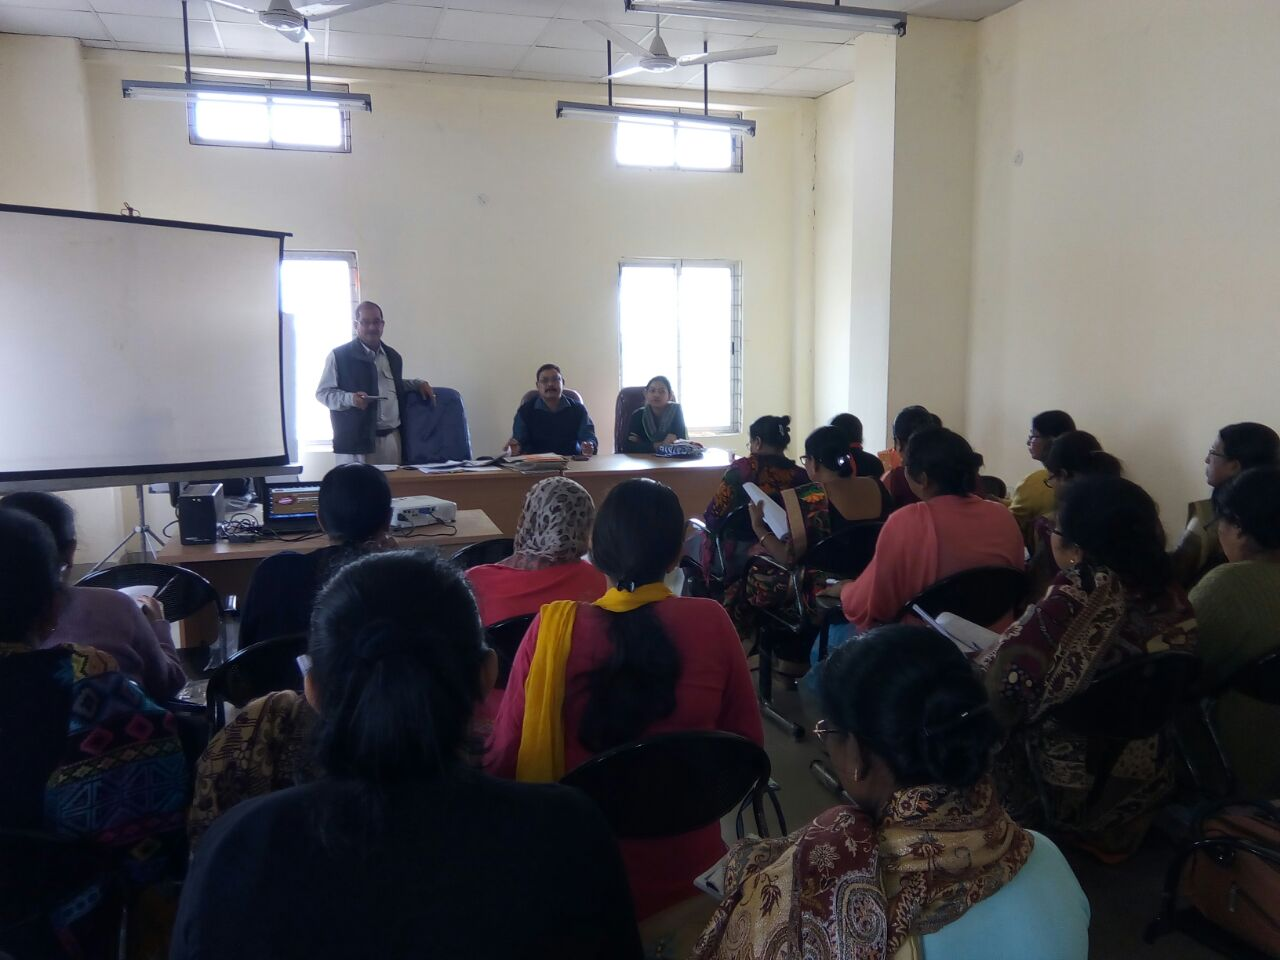 ANMs, Staff Nurses and LHVs in Darrang district, Assam underwent training on new contraceptives.